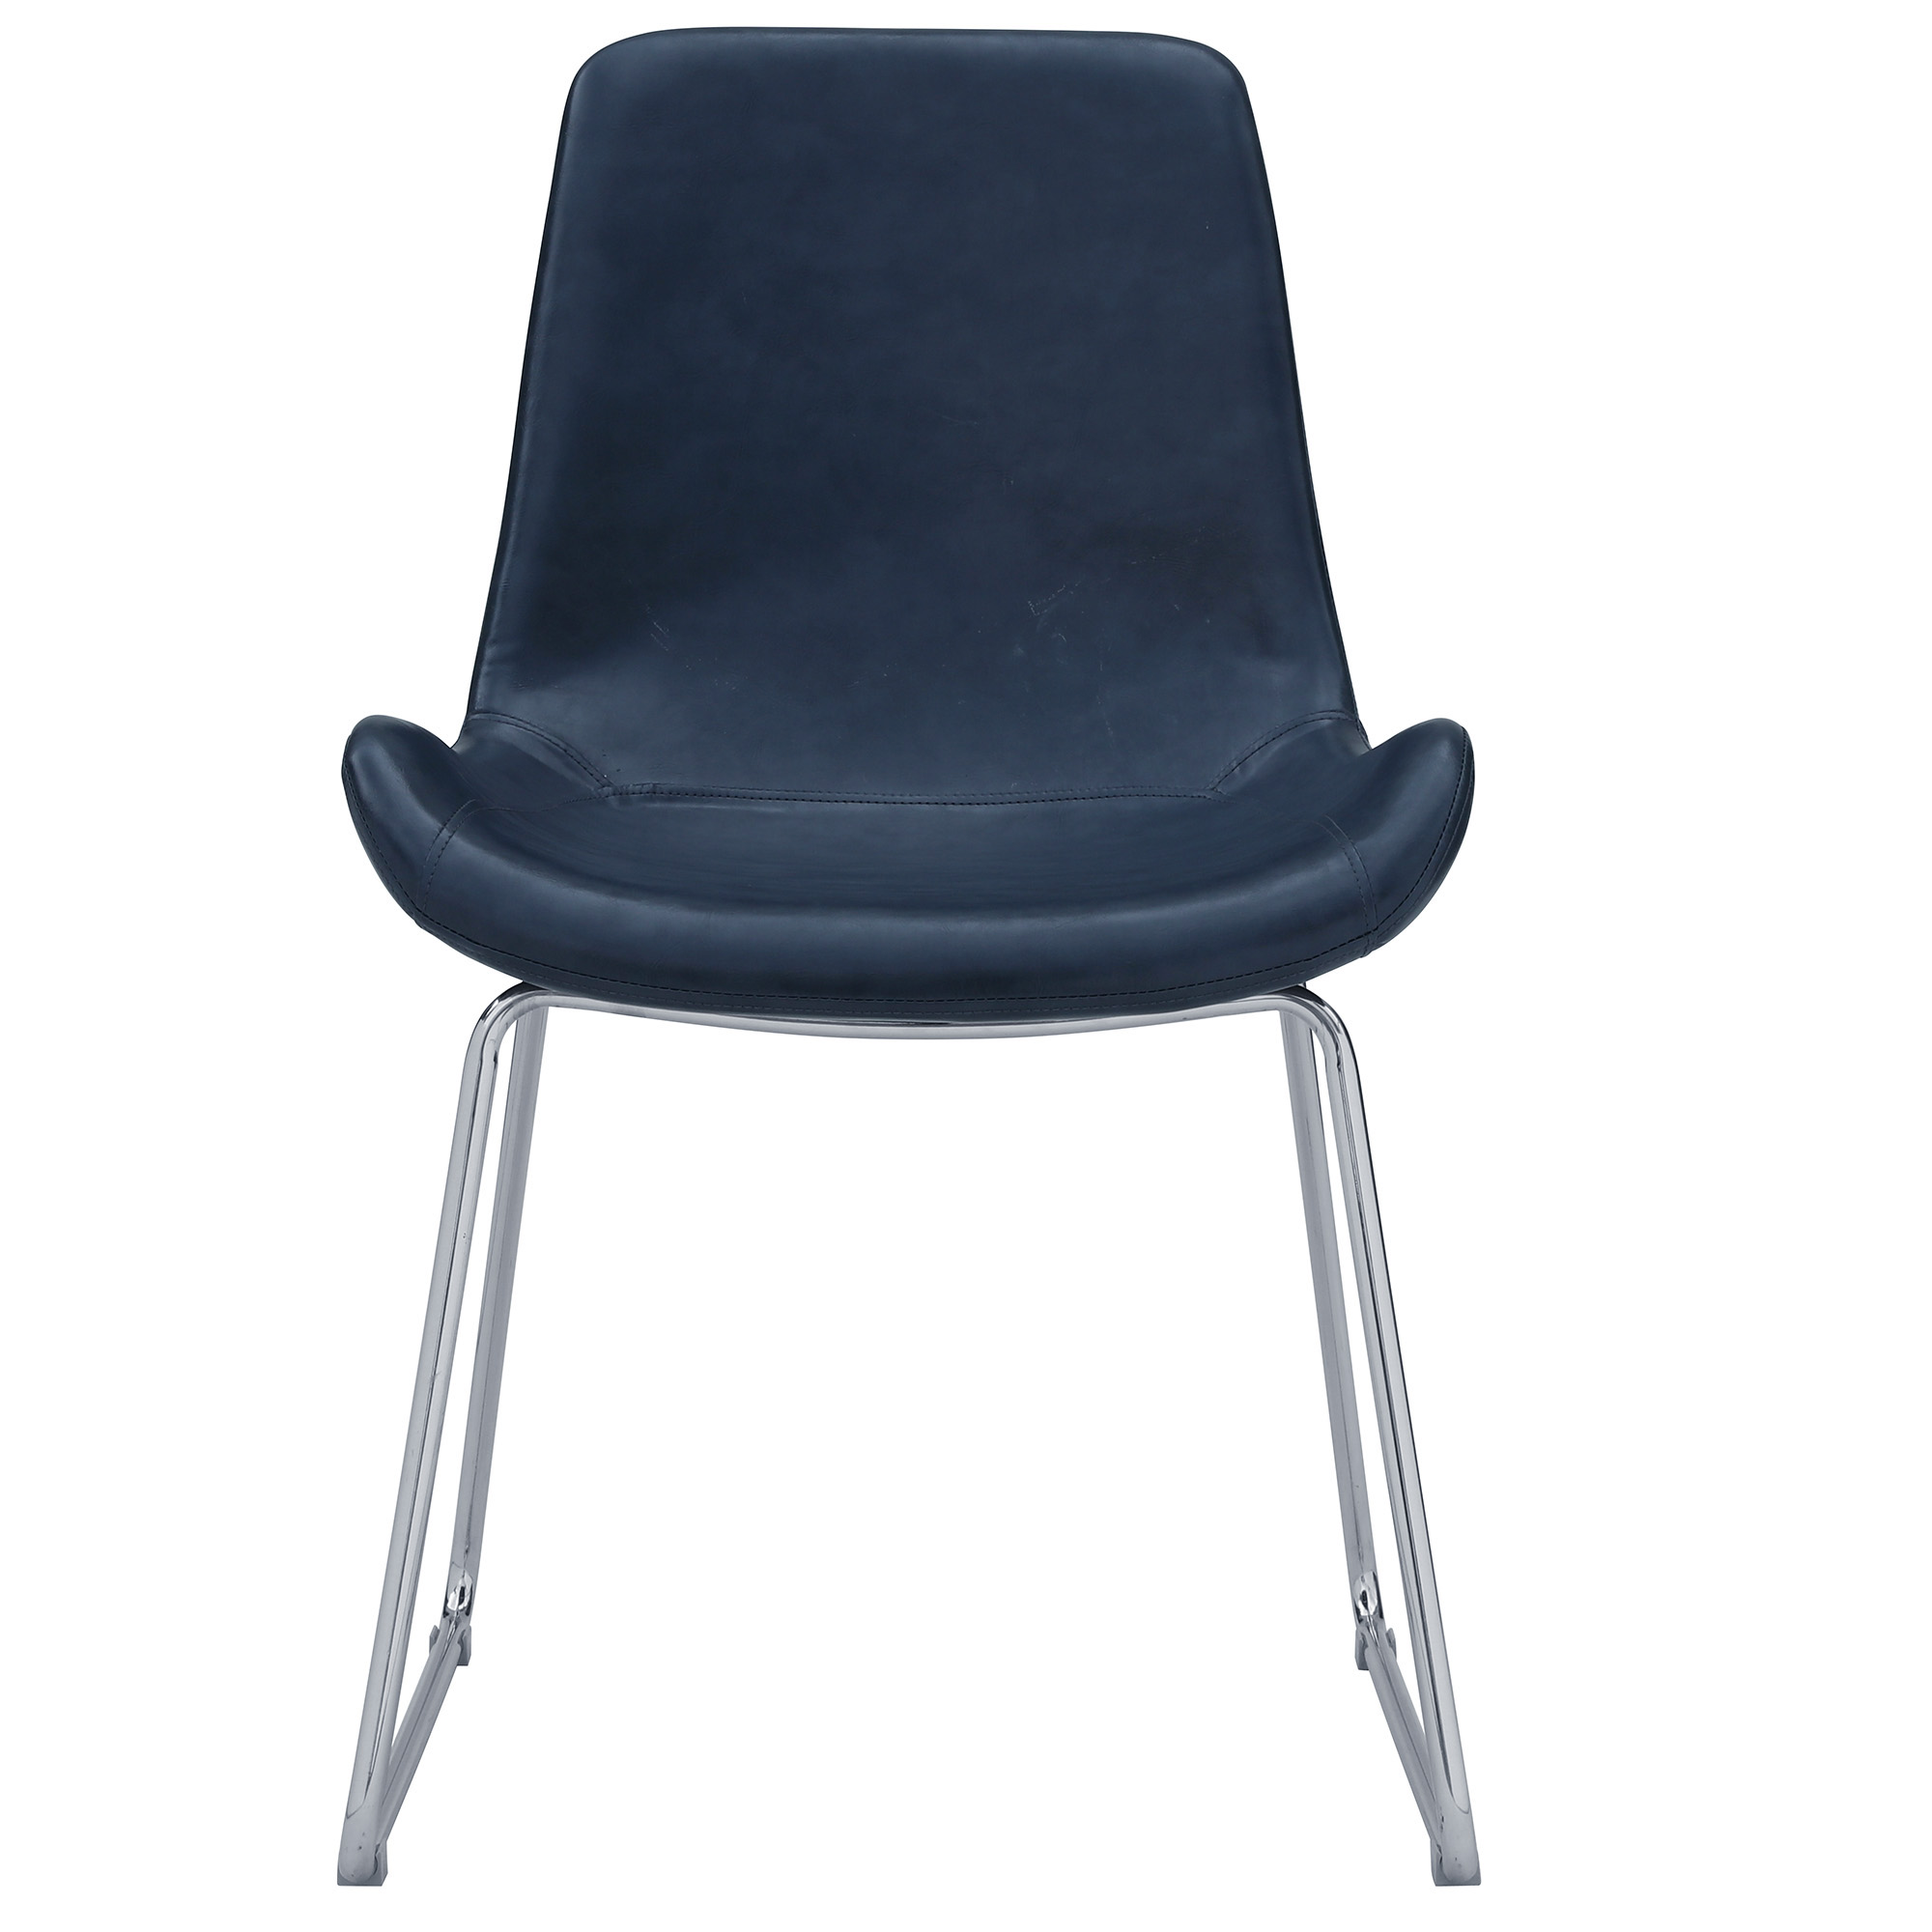 OTIS-ACCENT CHAIR-BLUE, 841173031381, Accent Chairs by Midha Furniture to Brampton, Mississauga, Etobicoke, Toronto, Scraborough, Caledon, Oakville, Markham, Ajax, Pickering, Oshawa, Richmondhill, Kitchener, Hamilton and GTA area